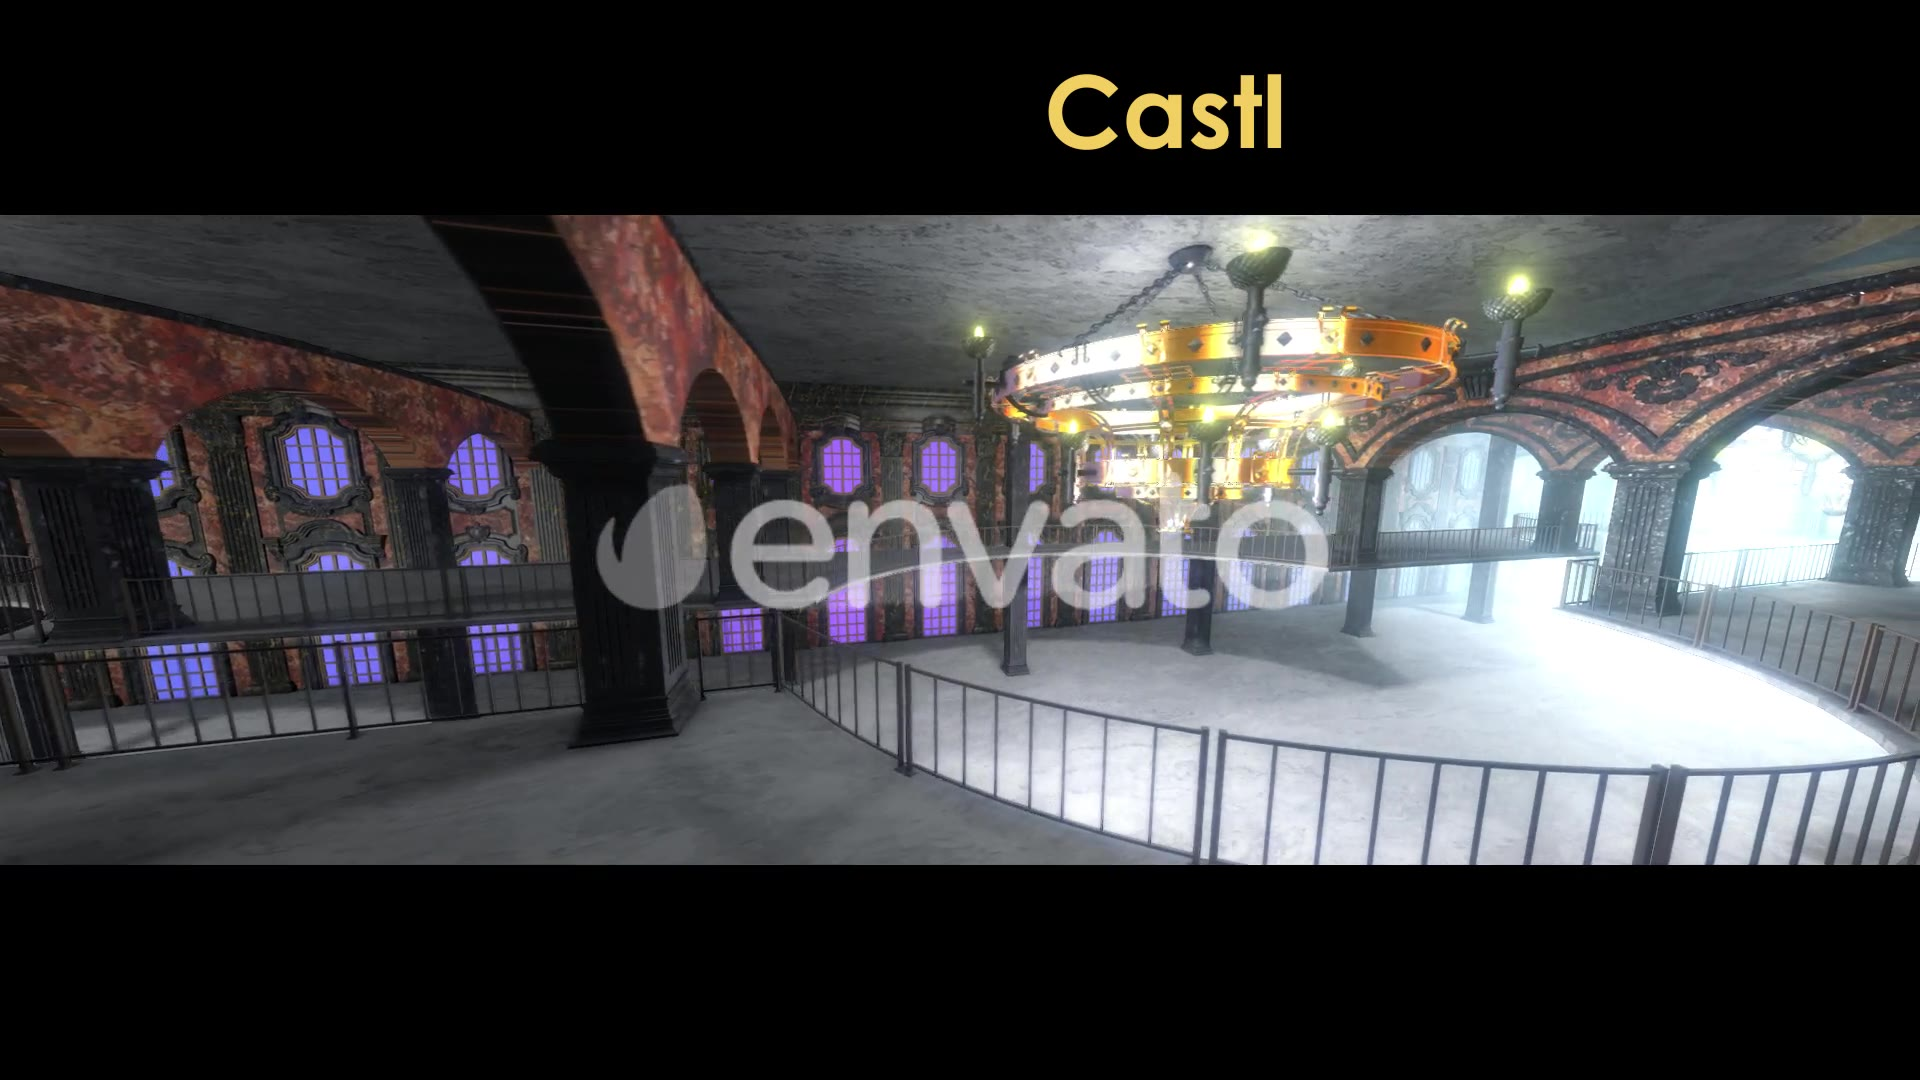 Castle Interior Loop Videohive 22120523 Motion Graphics Image 3